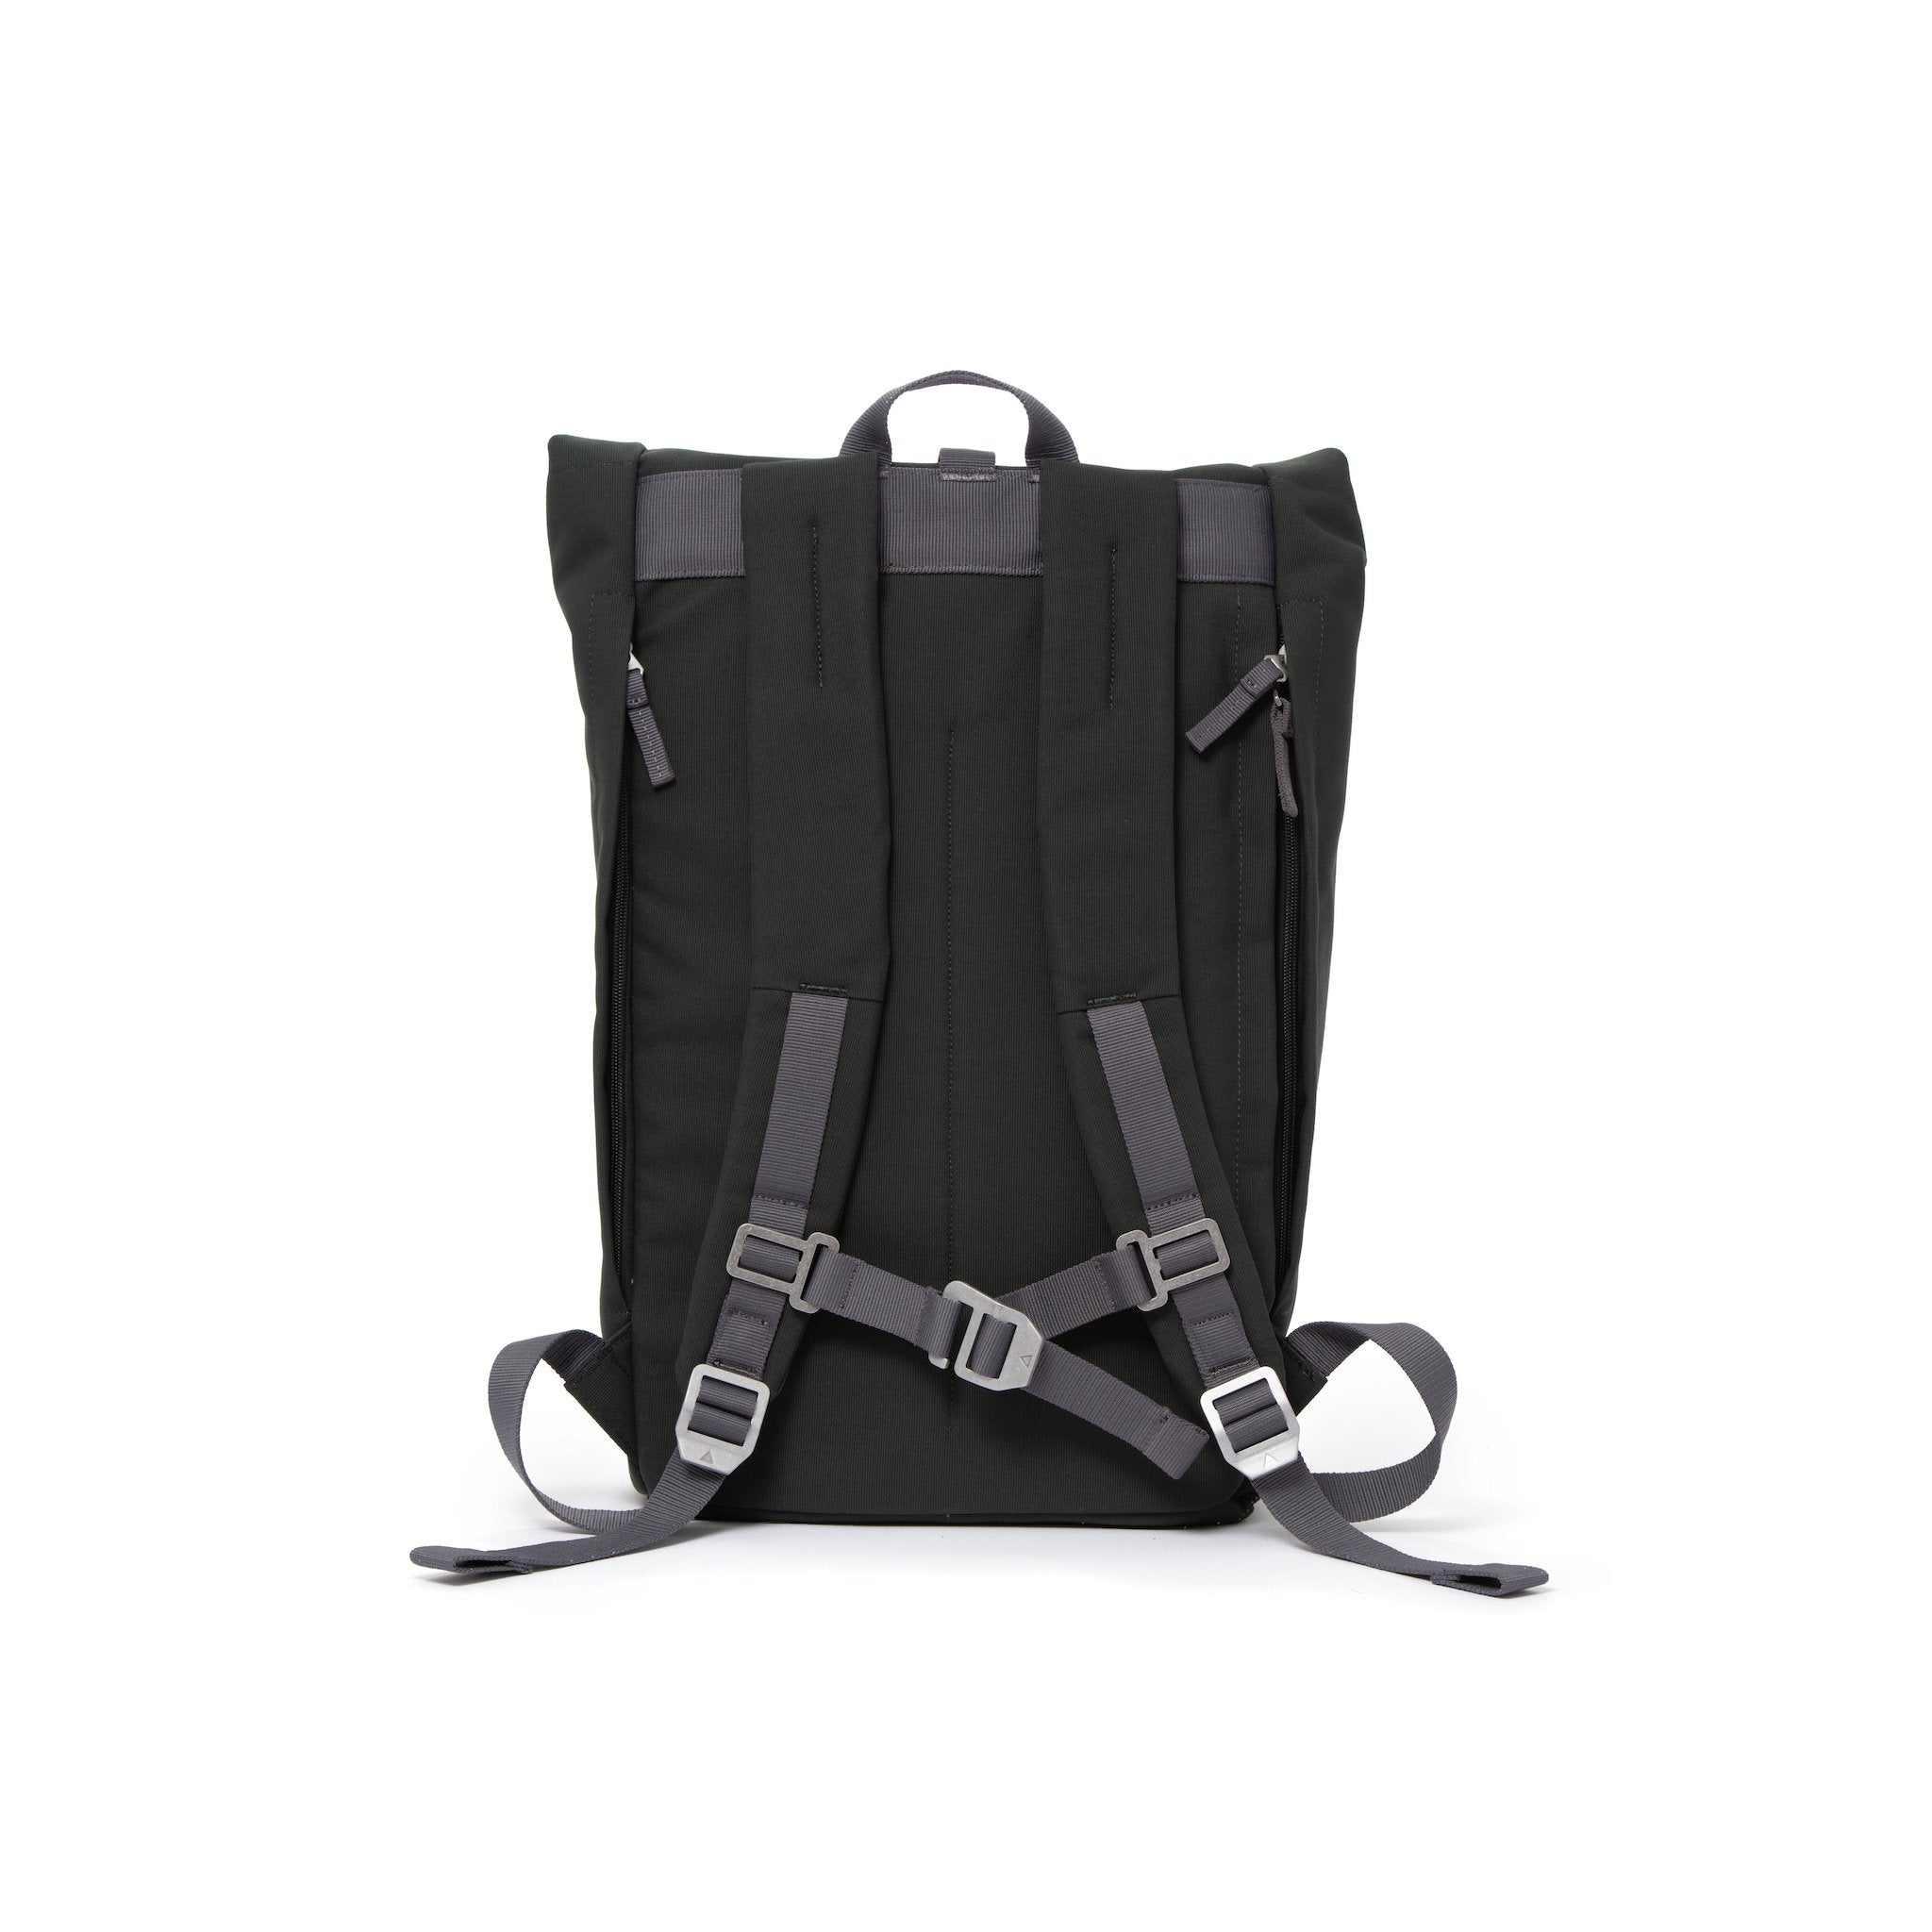 Grey rolltop backpack with padded shoulder straps and chest strap.